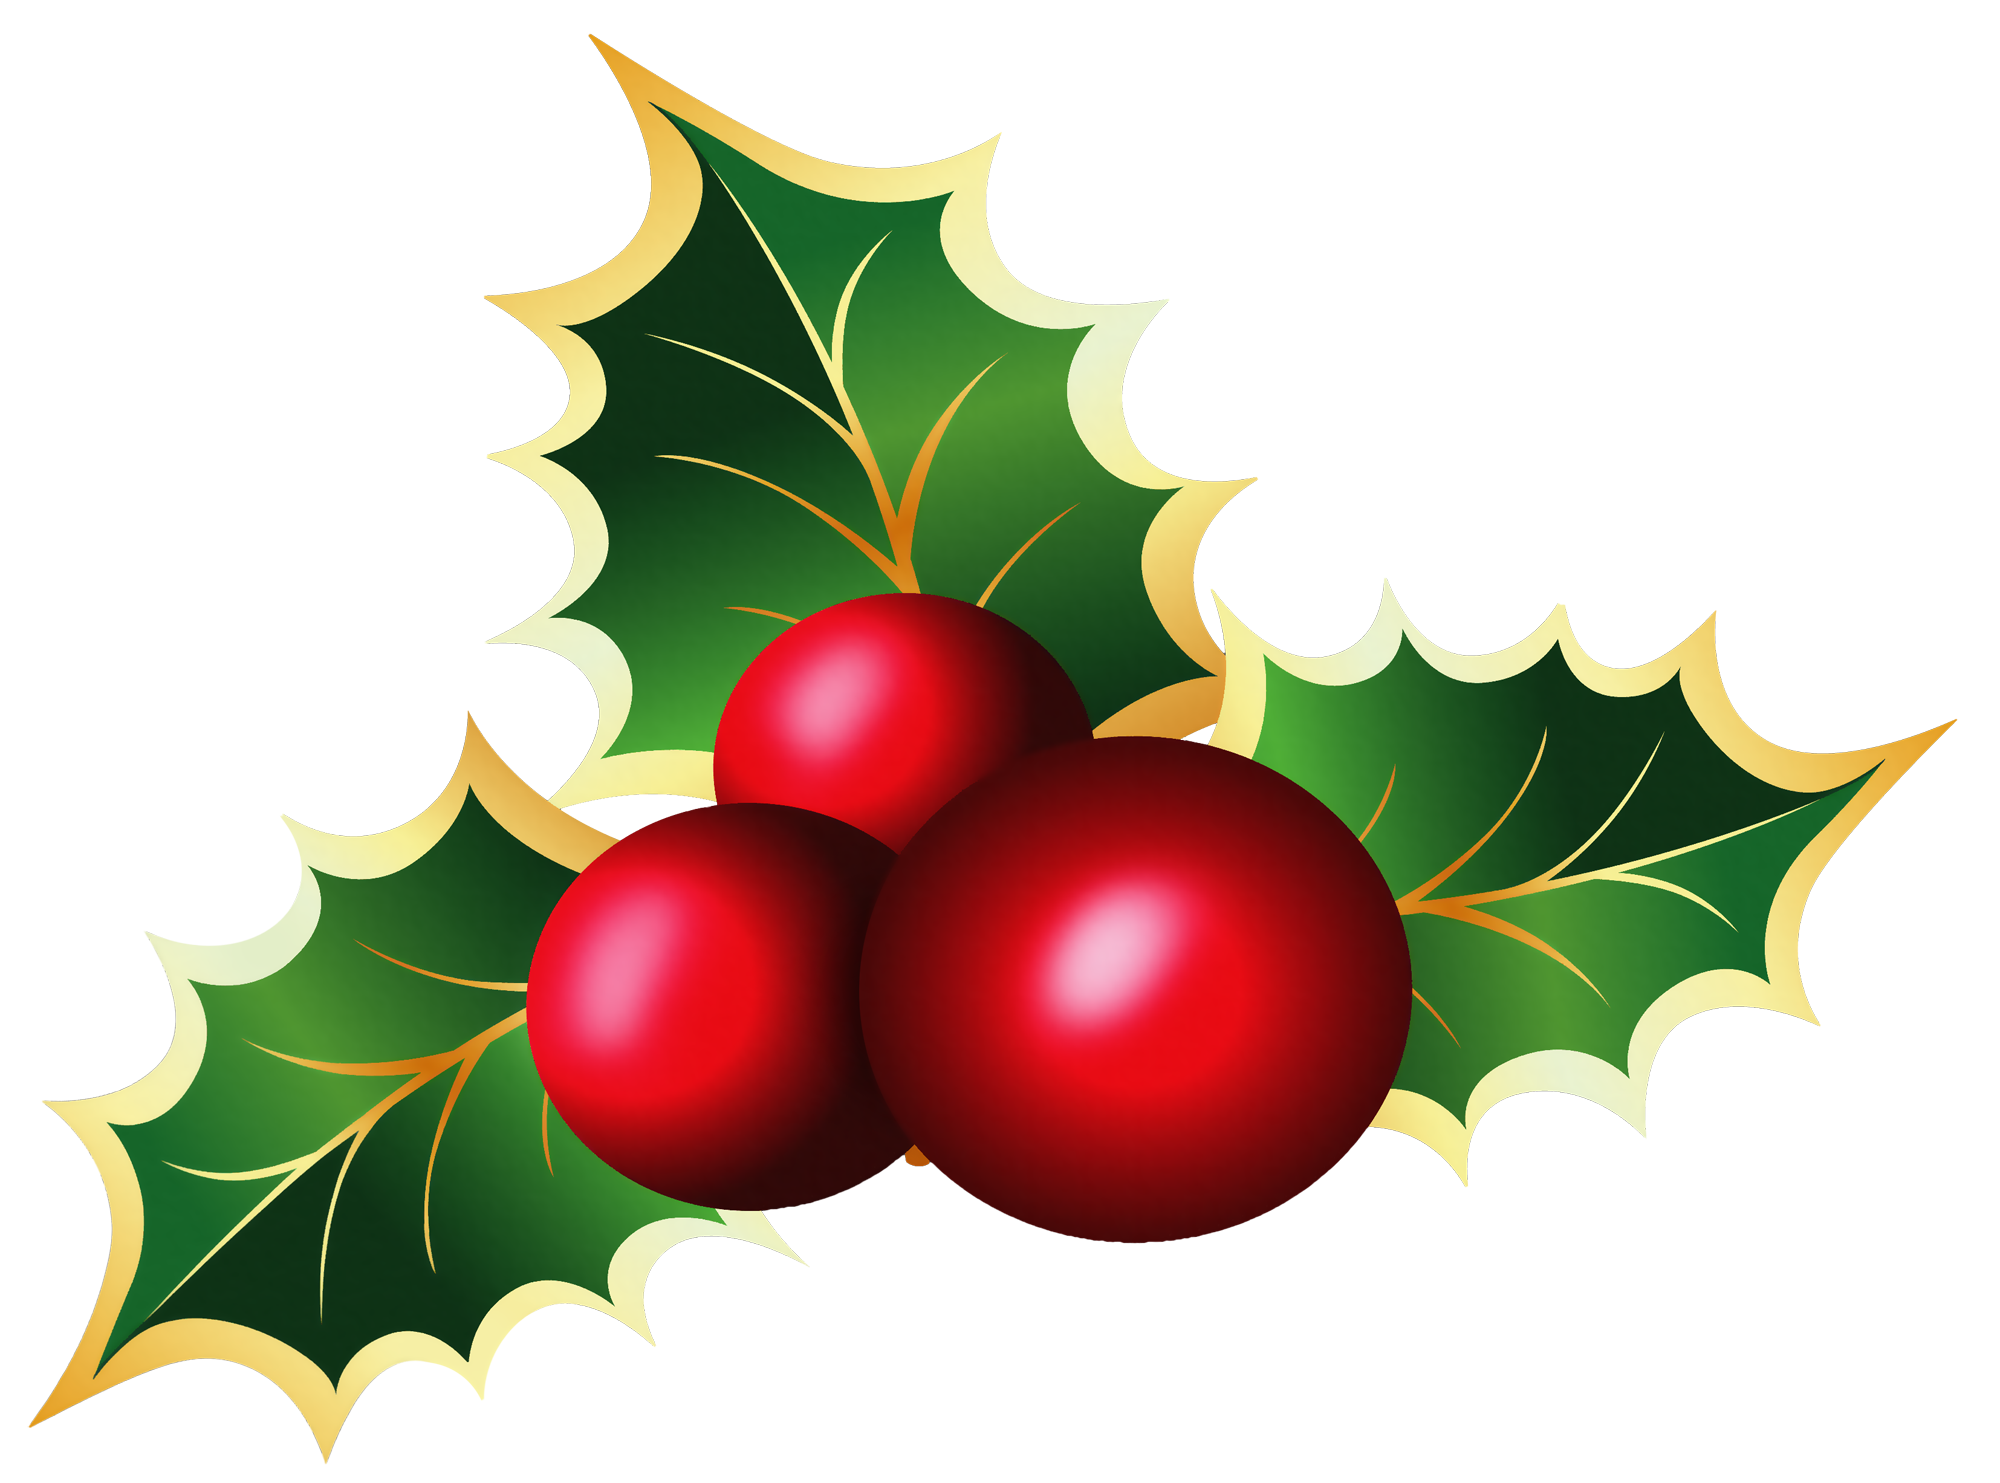 2000x1483 Transparent Christmas Mistletoe Png Pictureu200b Gallery